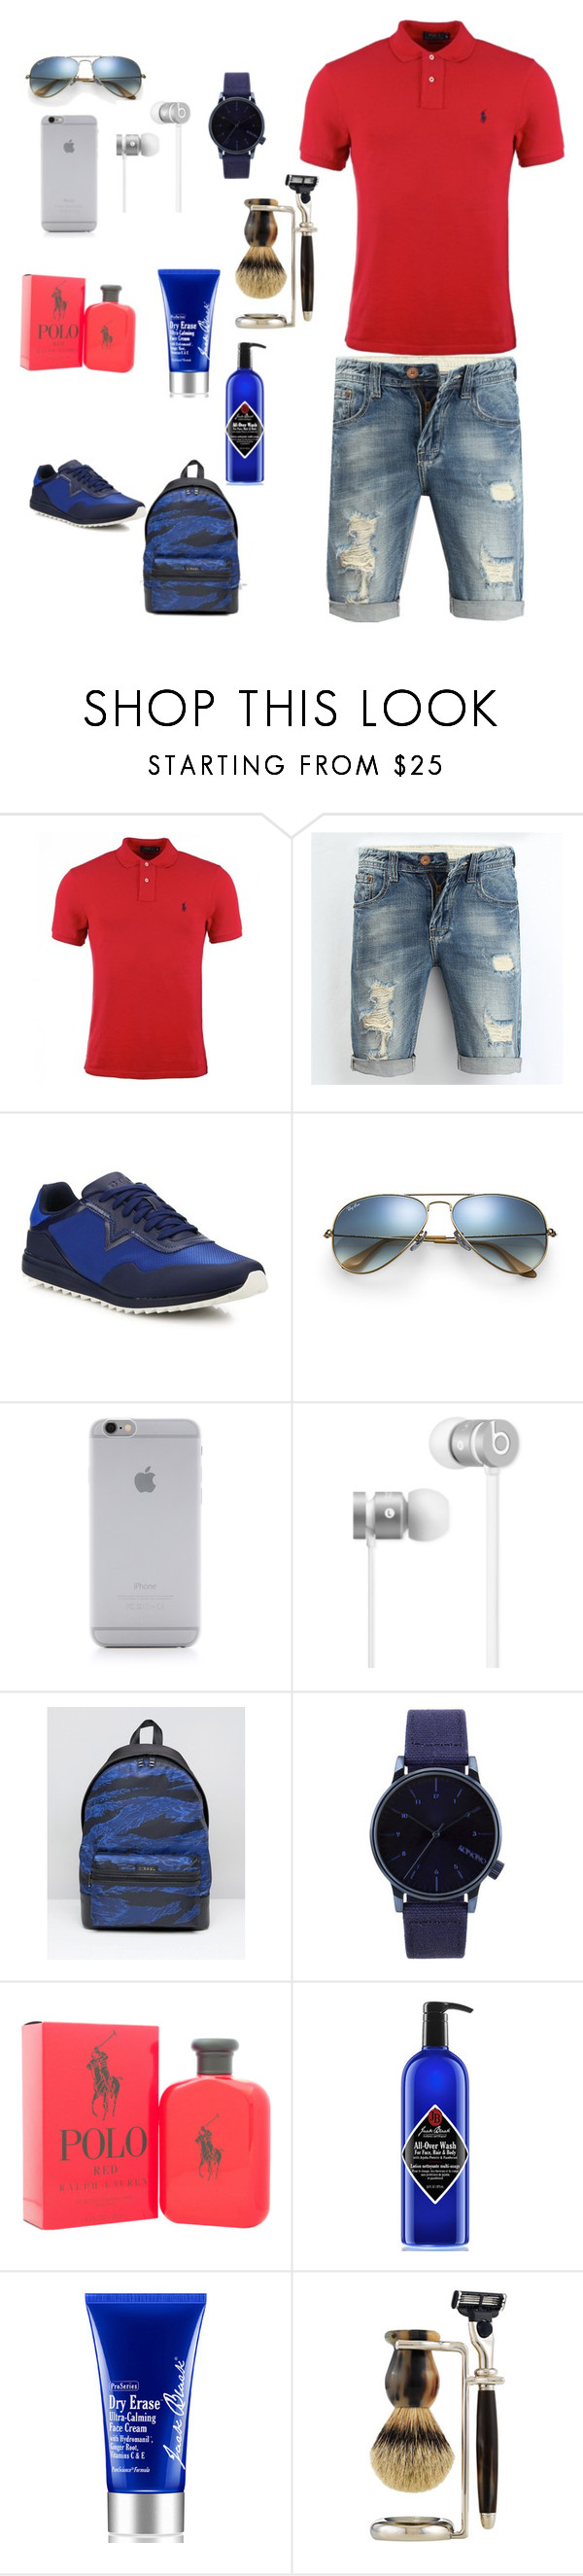 """""""sport❤️"""" by mary-tshoy ❤ liked on Polyvore featuring Polo Ralph Lauren, Diesel, Ray-Ban, Native Union, Beats by Dr. Dre, Komono, Ralph Lauren, Jack Black, The Art of Shaving and men's fashion"""